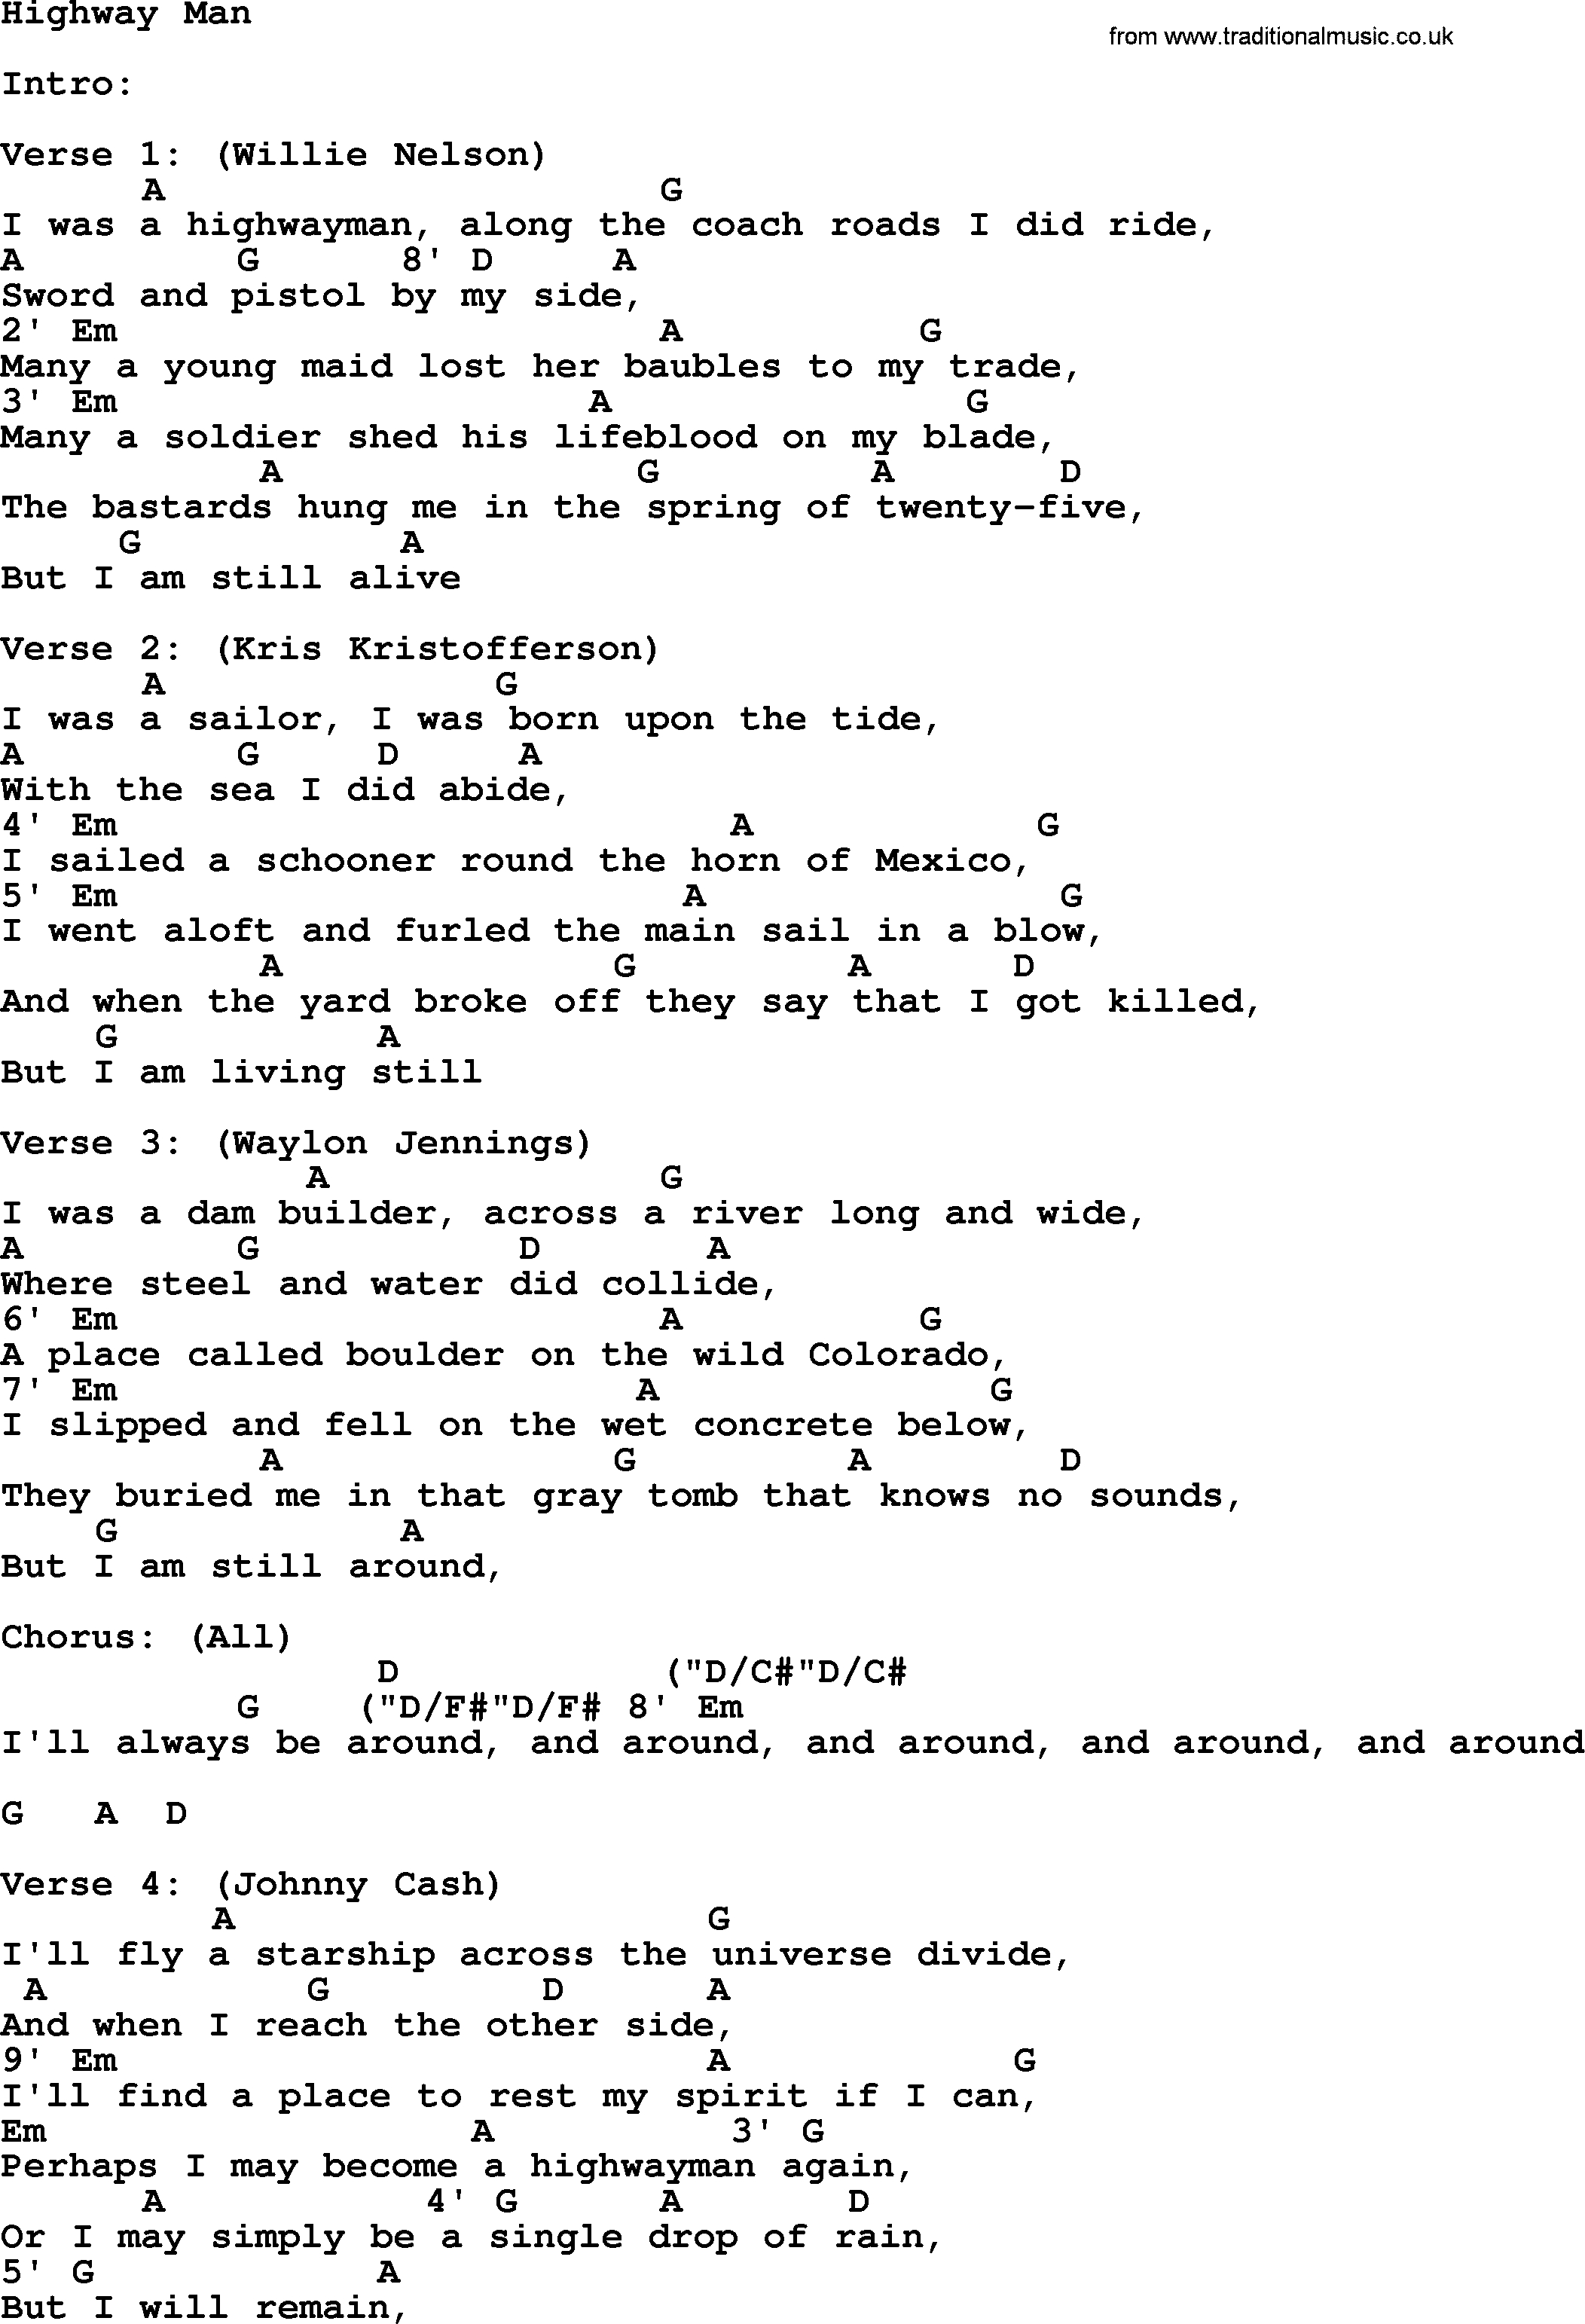 Across The Universe Chords Johnny Cash Song Highway Man Lyrics And Chords